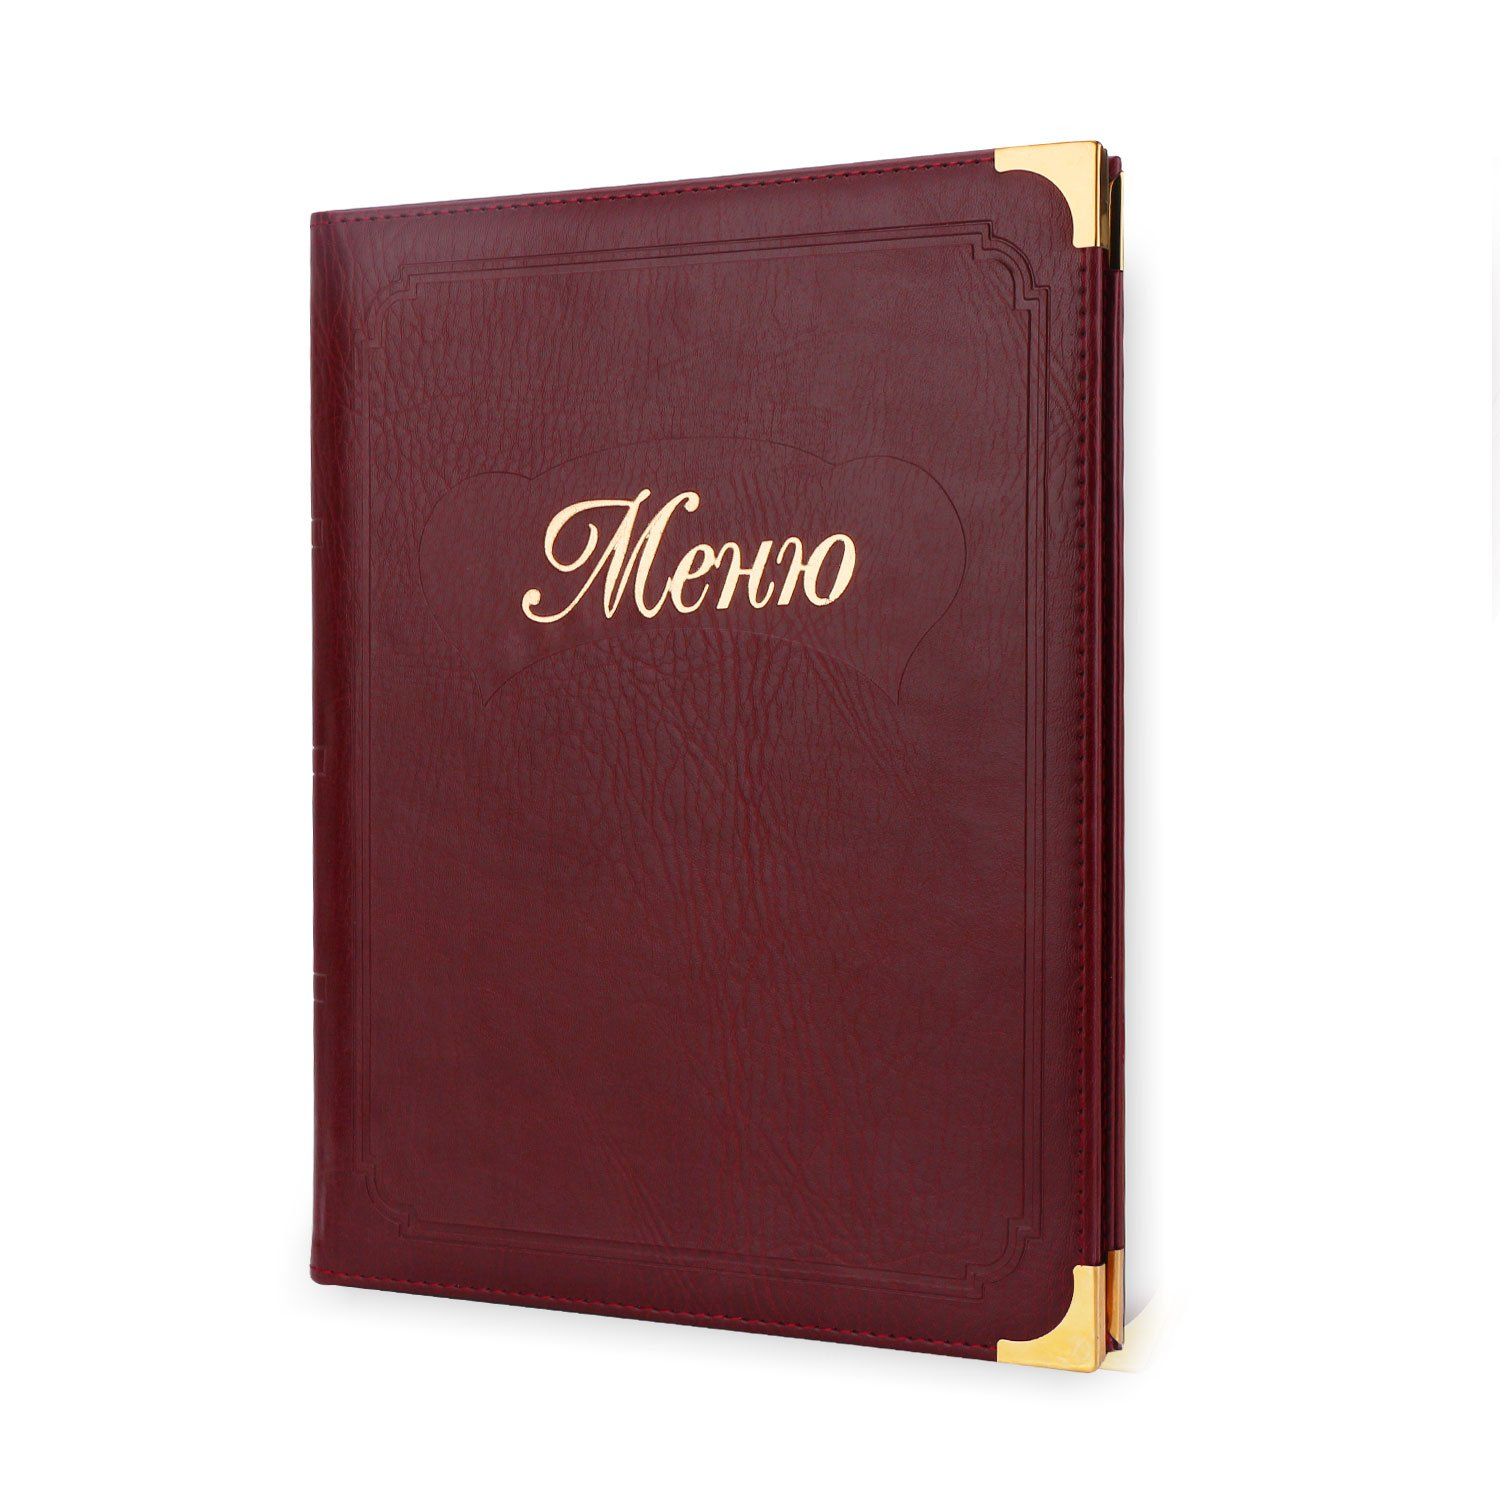 Segarty Leather Menu Cover 9.8x12.5 Inch, Restaurant Recipe Menu Covers for Diners, Cafes, Bistros, and Cafeterias, Elegant Gold Metal Corners, 1 Pack